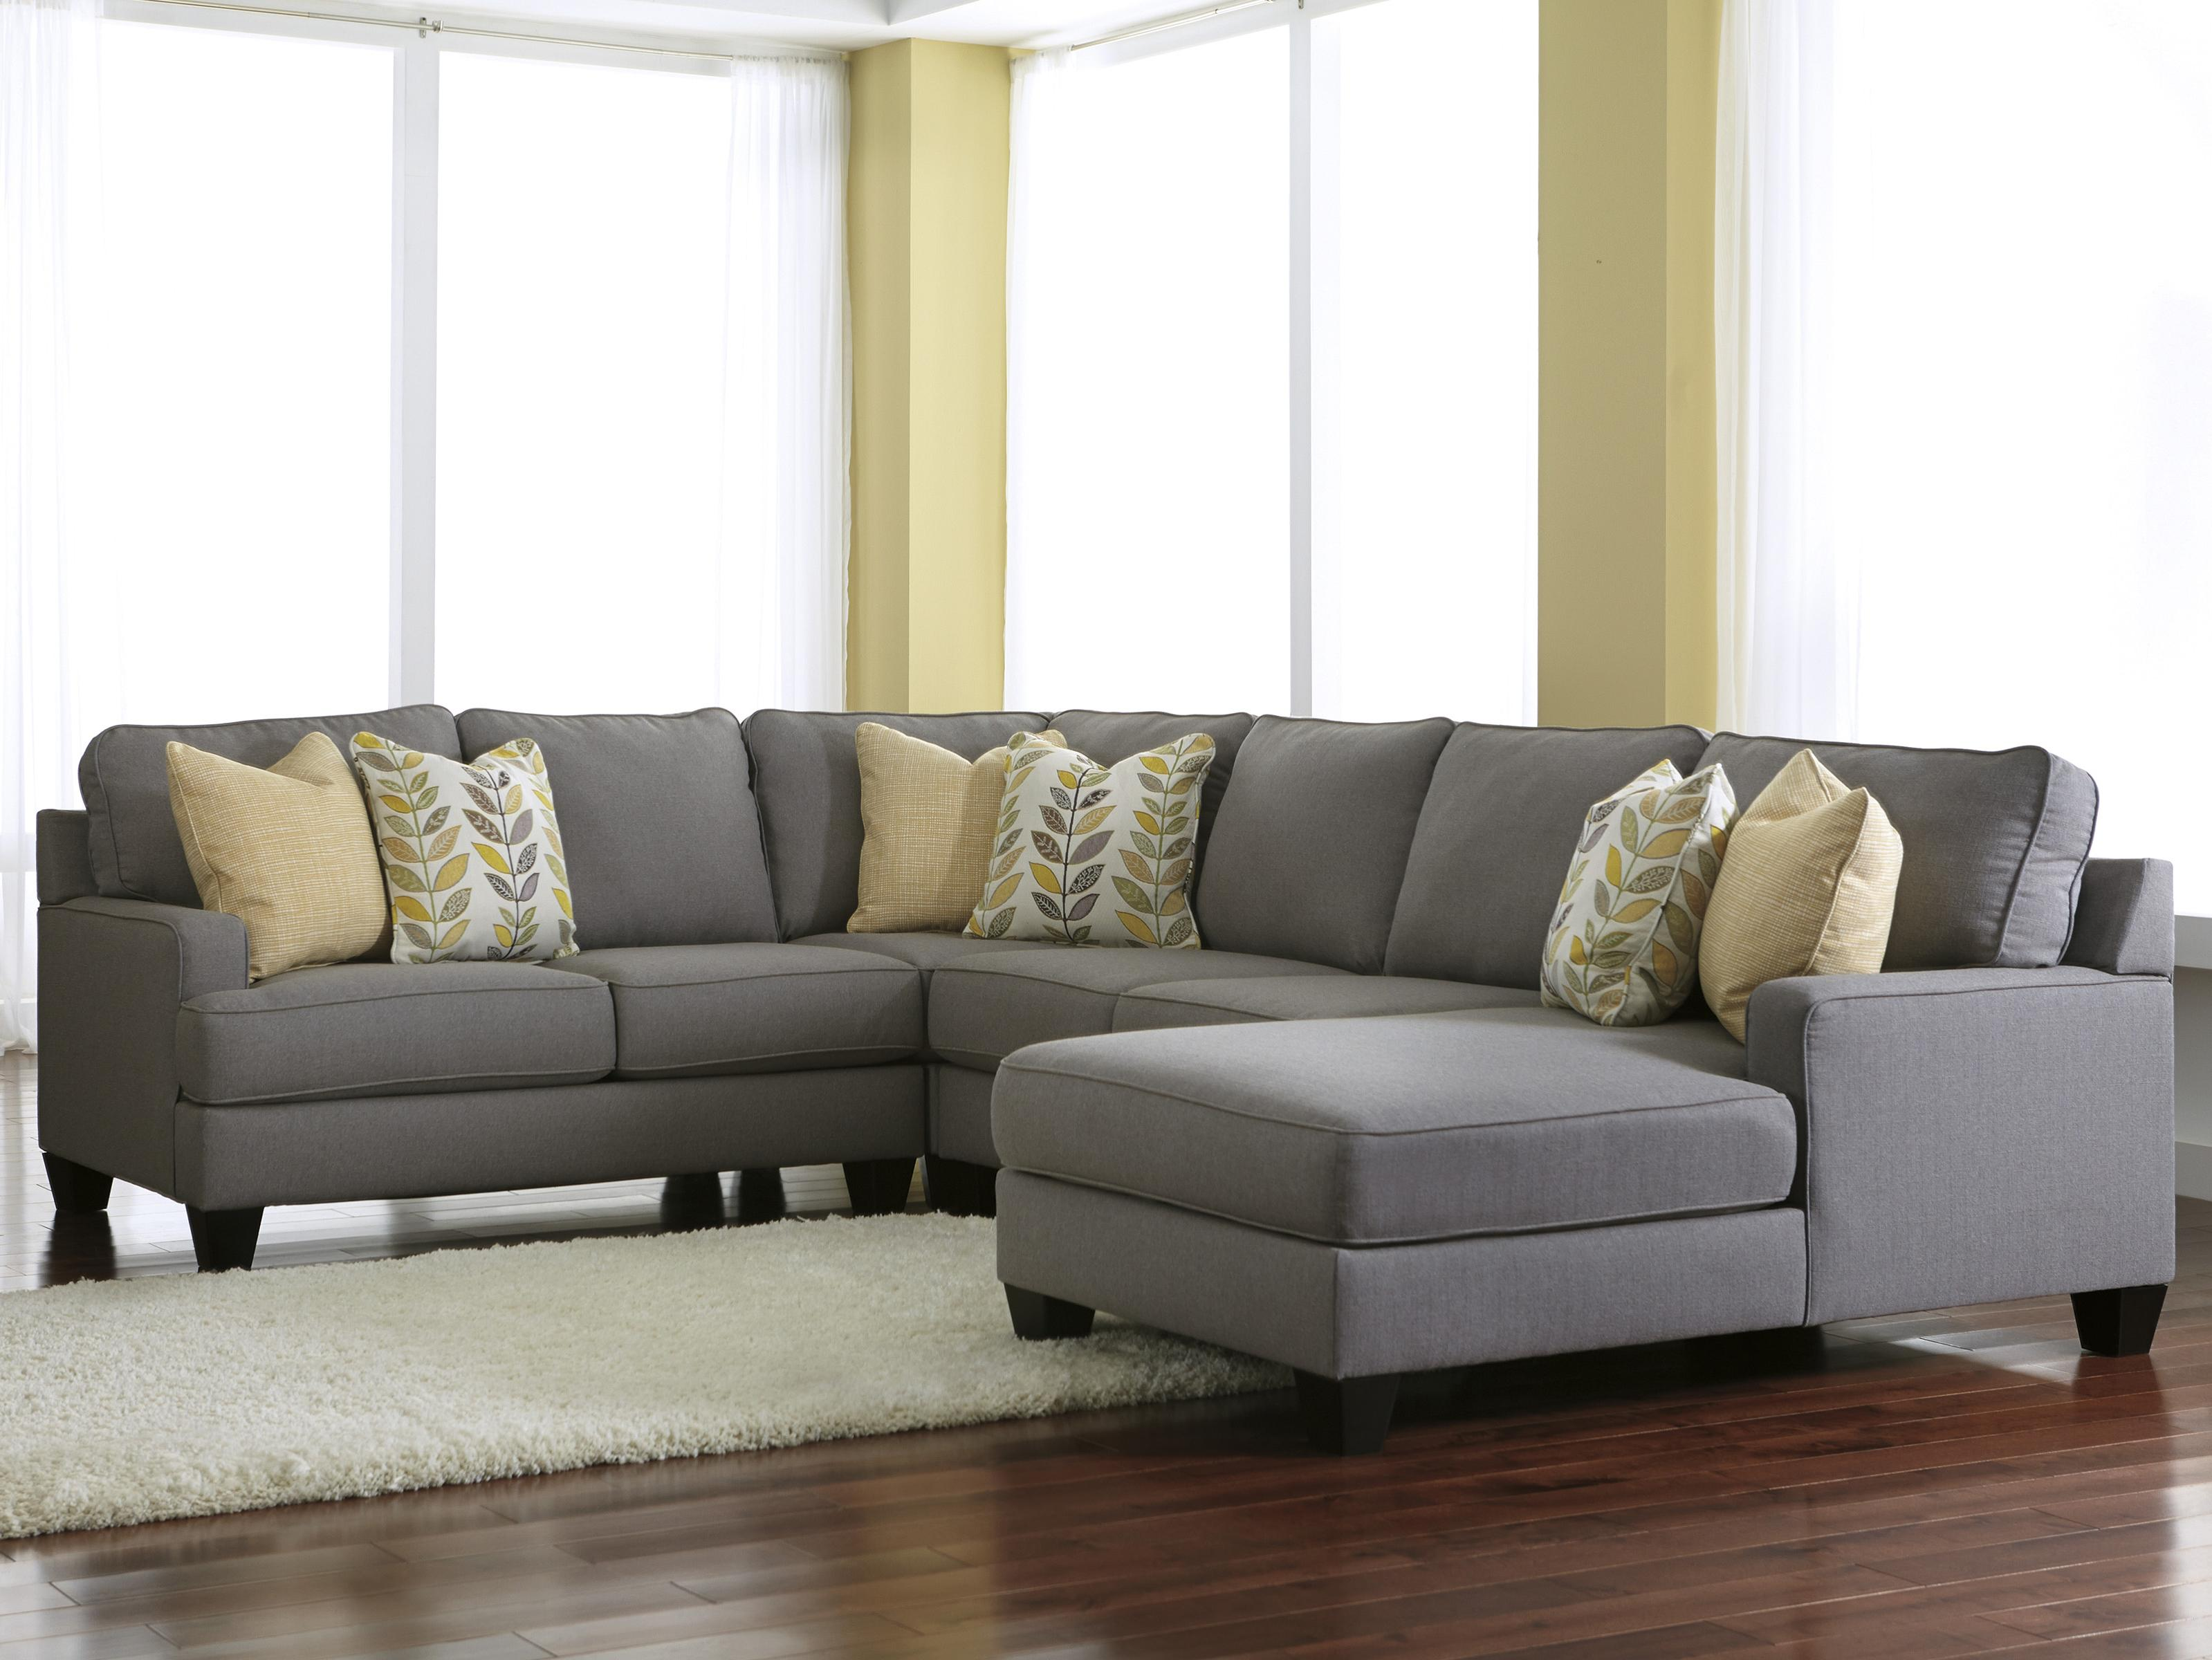 Sofascore Kayla Day Grey Sectional Sofa With Chaise 3 Seater Recliner Modern Sleeper